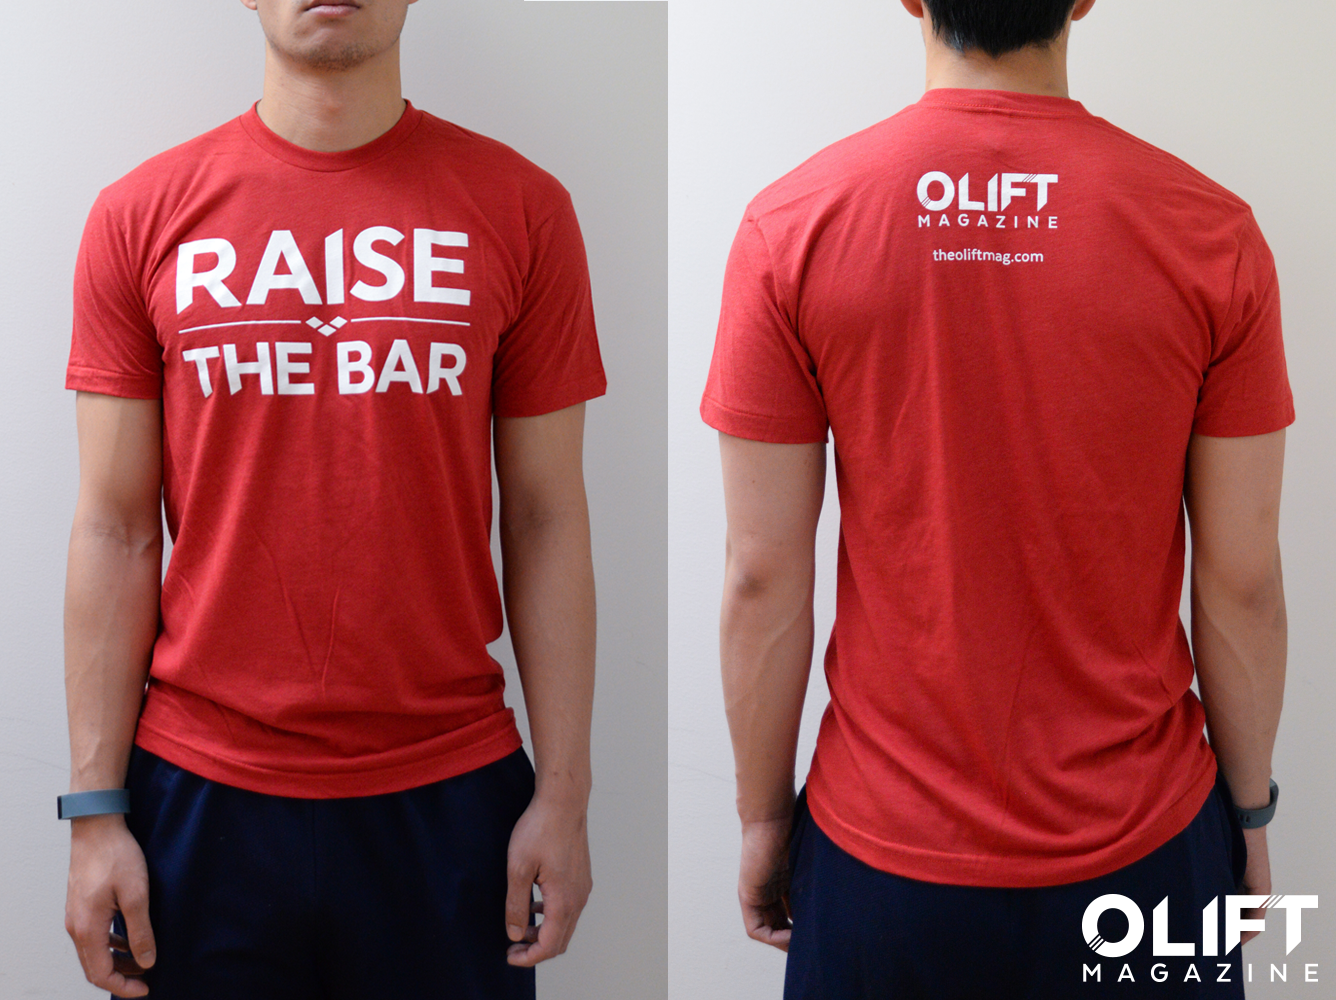 OLift-Shirt-RED.png